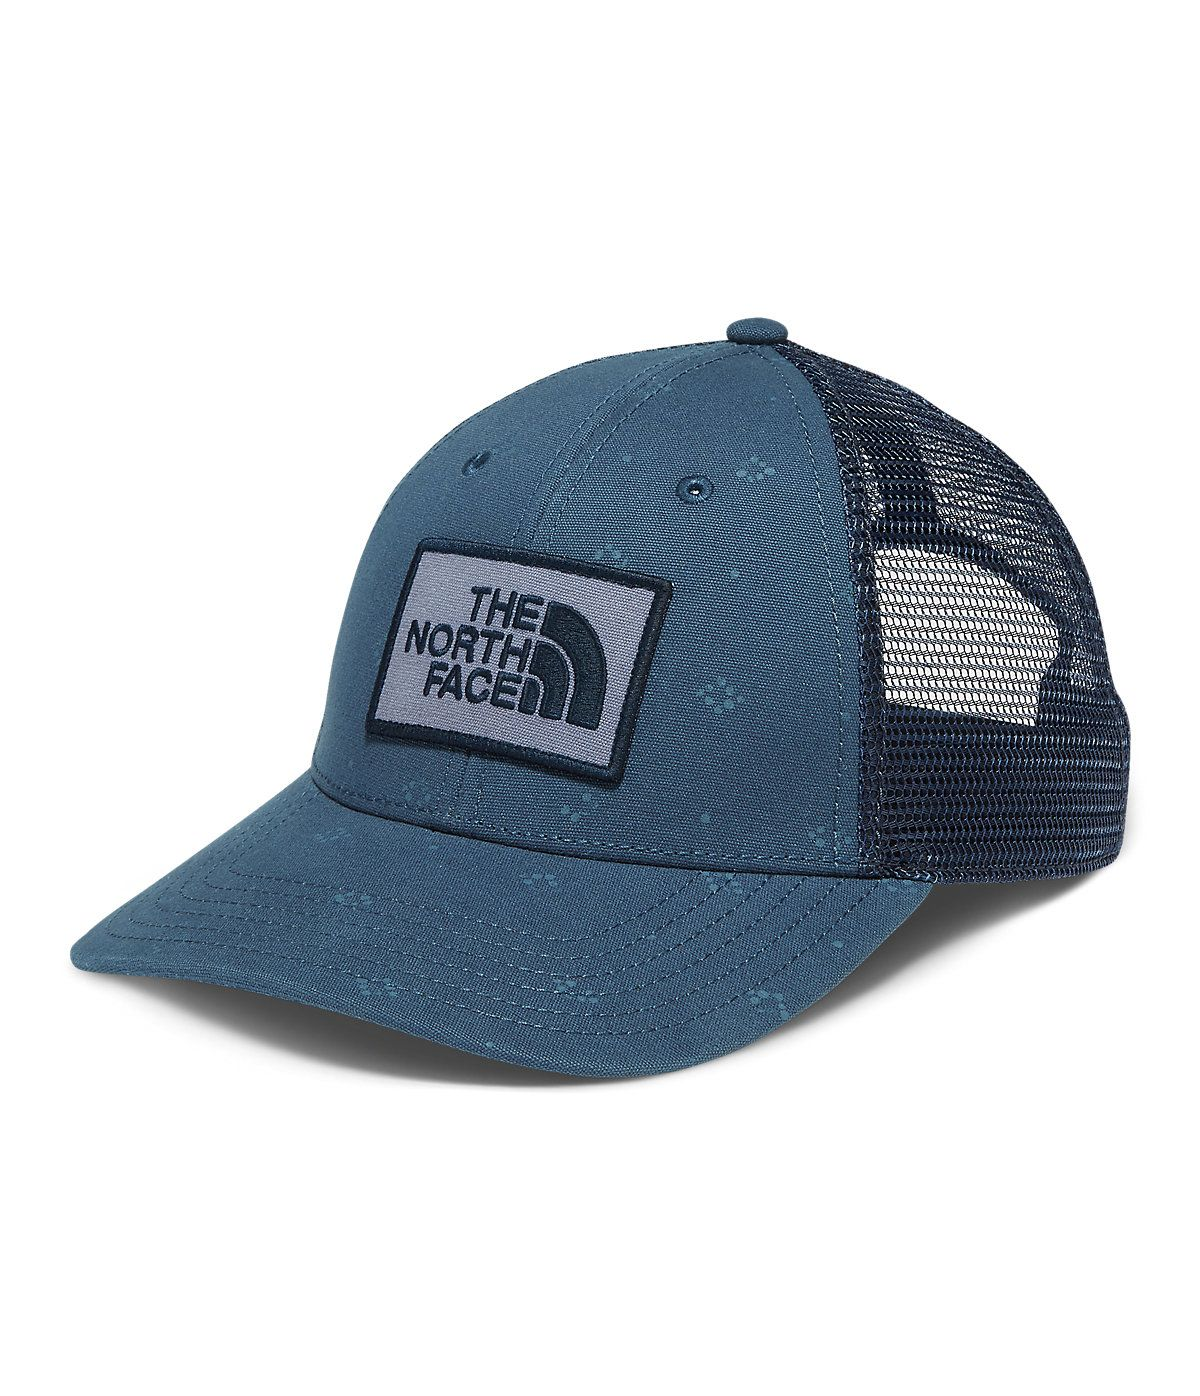 a16afeaa Printed mudder trucker in 2019 | Products | Hats, The north face ...